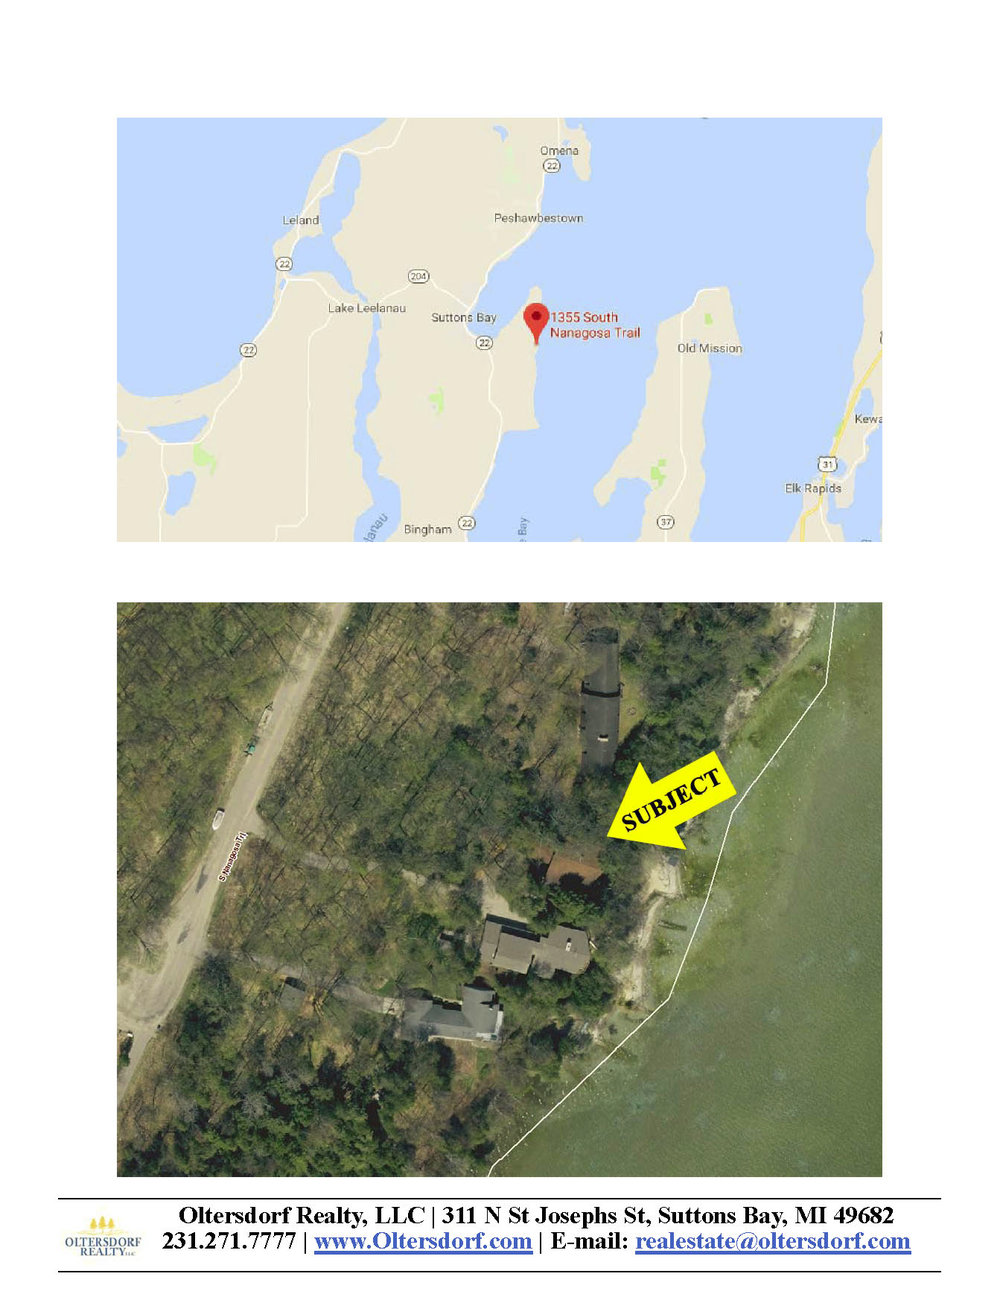 1355 S Nanagosa Trail Suttons Bay – FOR SALE by Oltersdorf Realty LLC - Marketing Packet (10).jpg